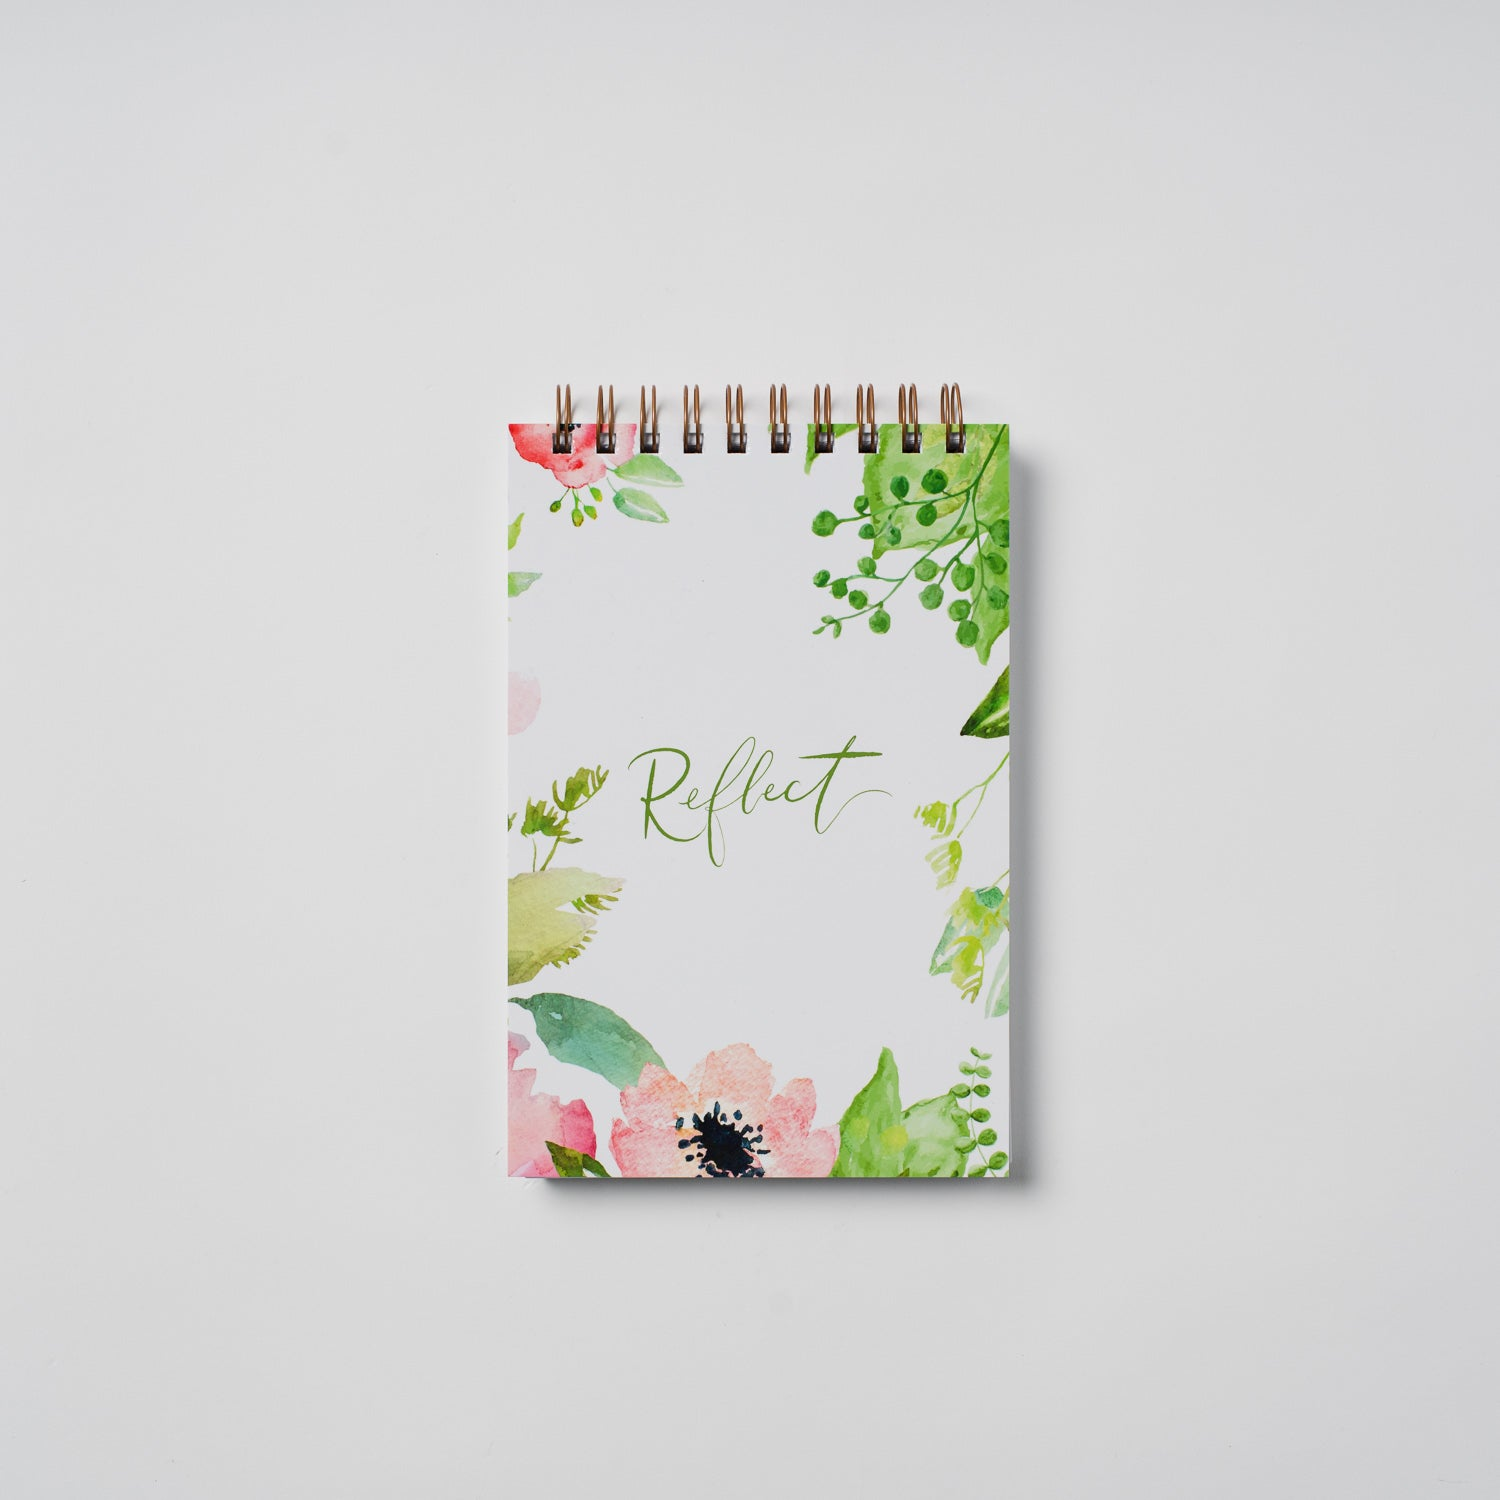 Floral 'Reflect' Journal